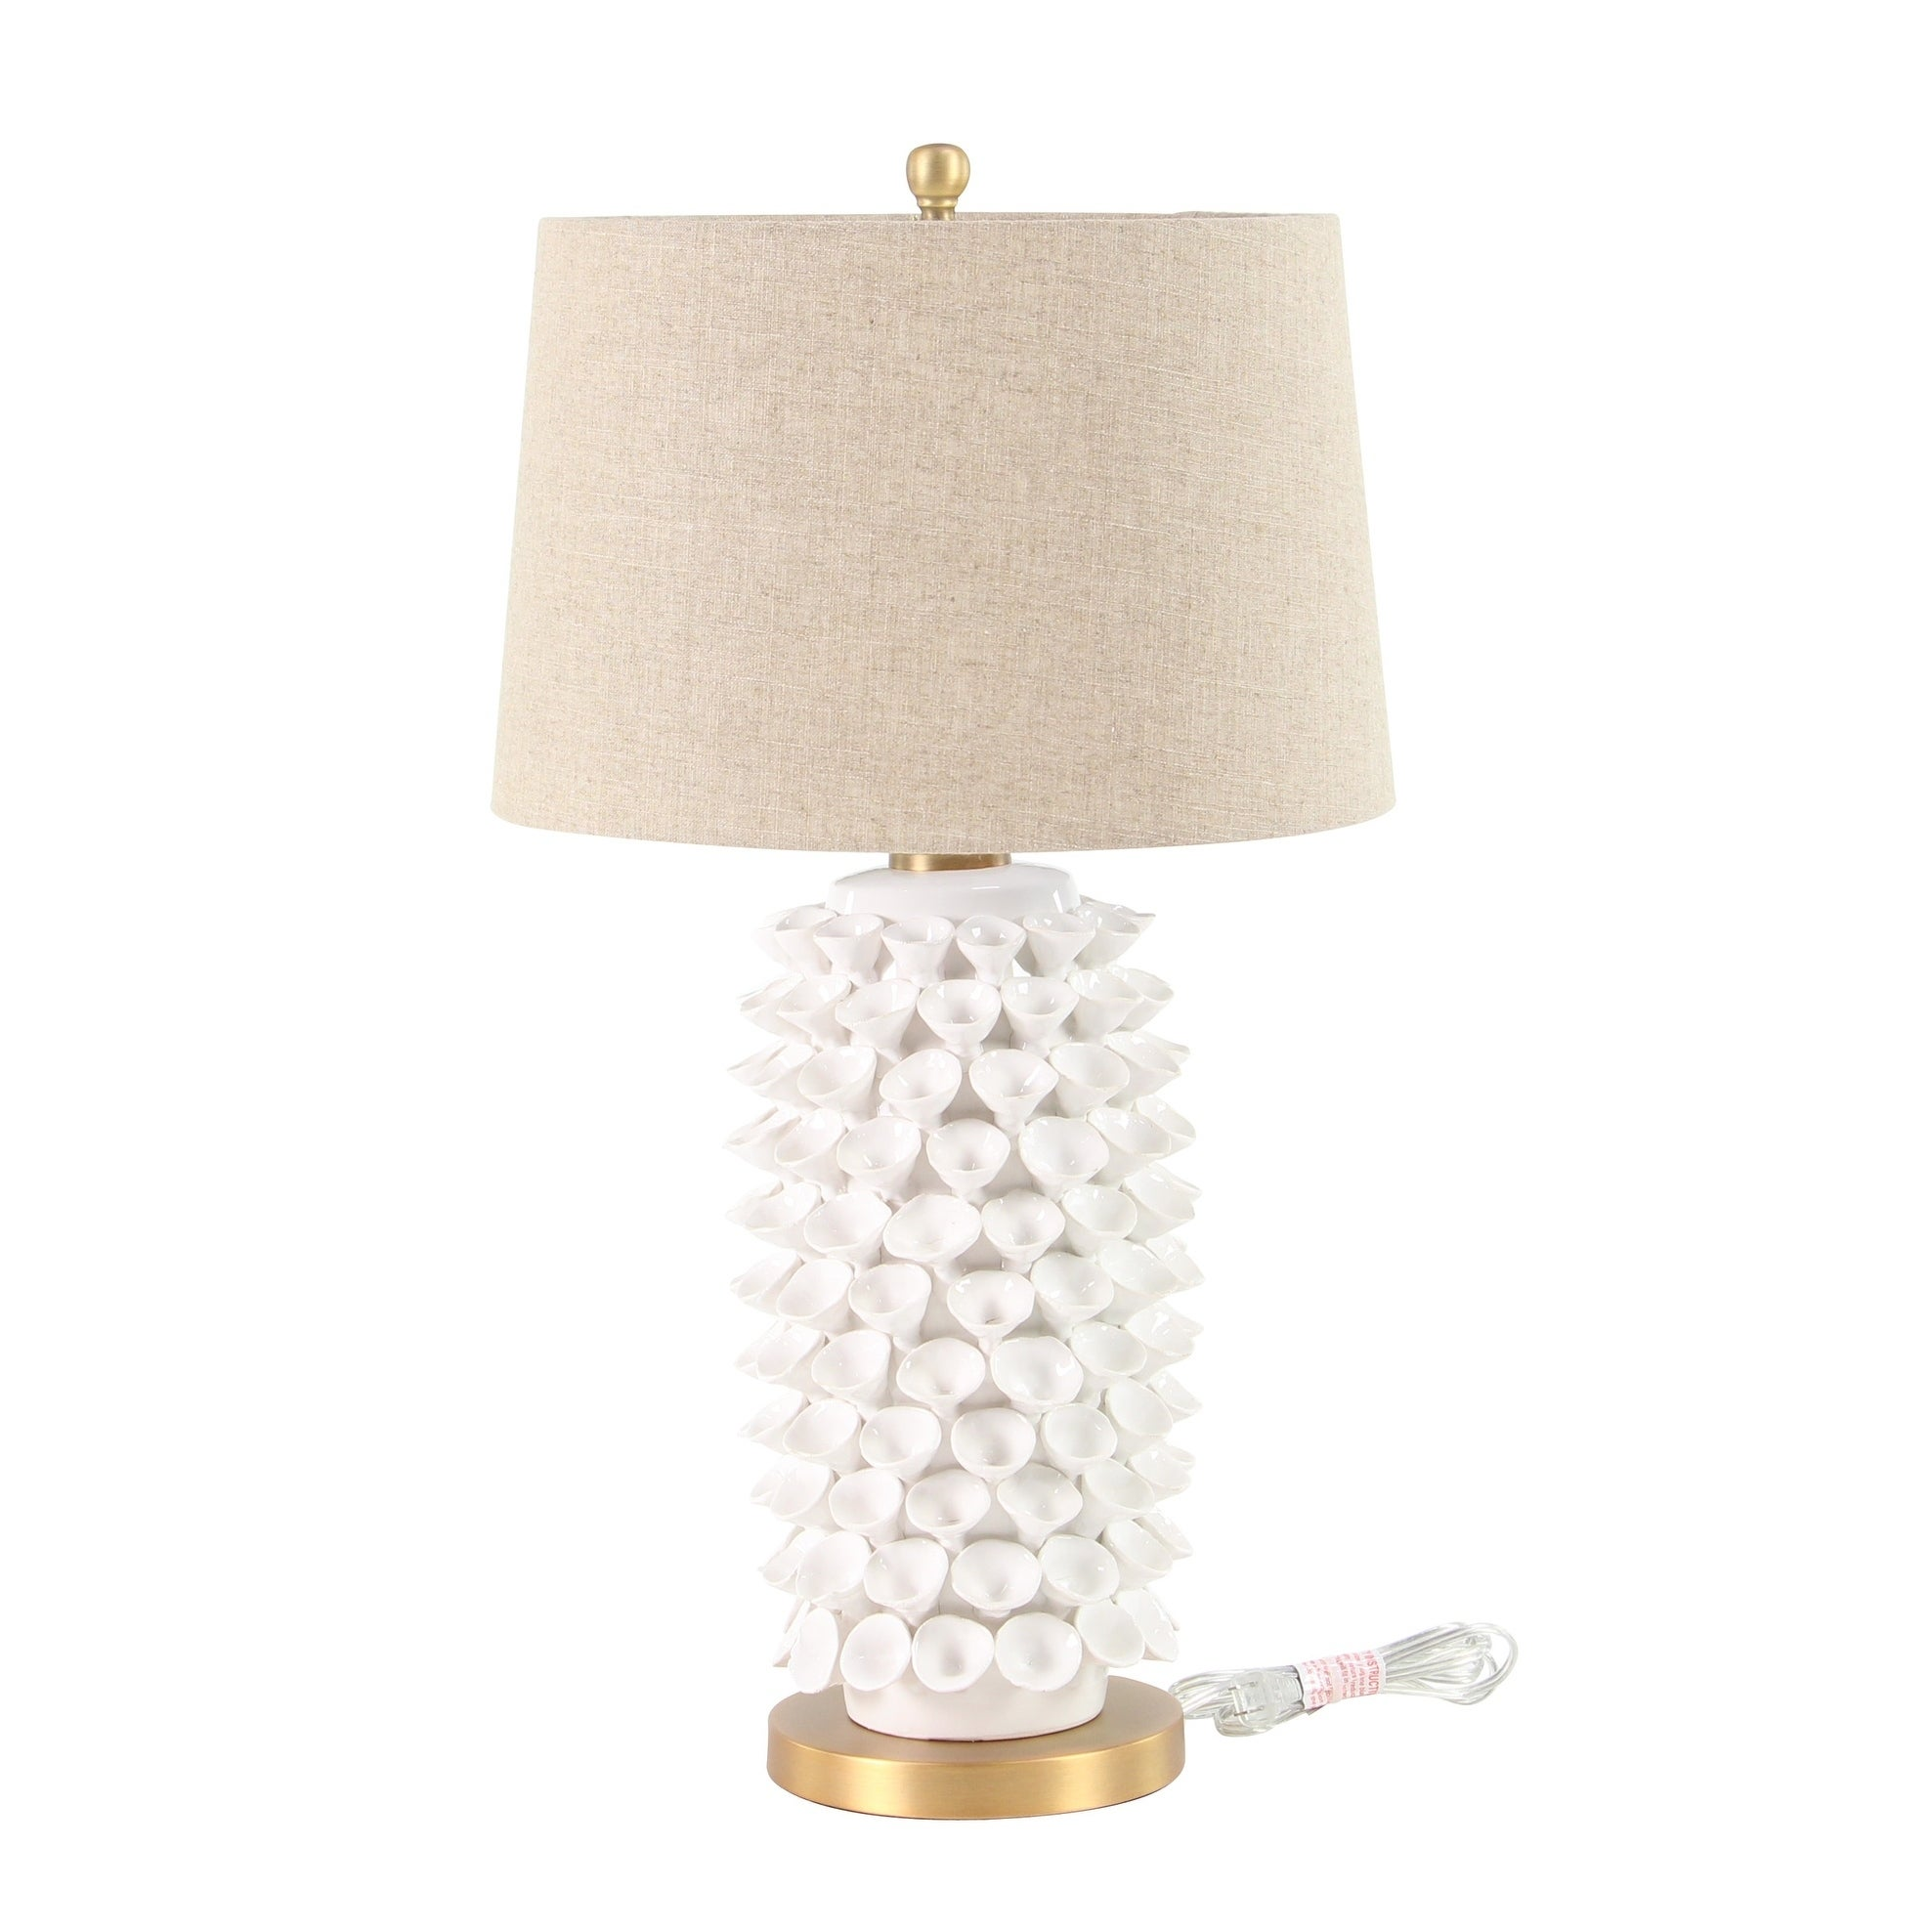 shades sale and white glass for gold table lamp